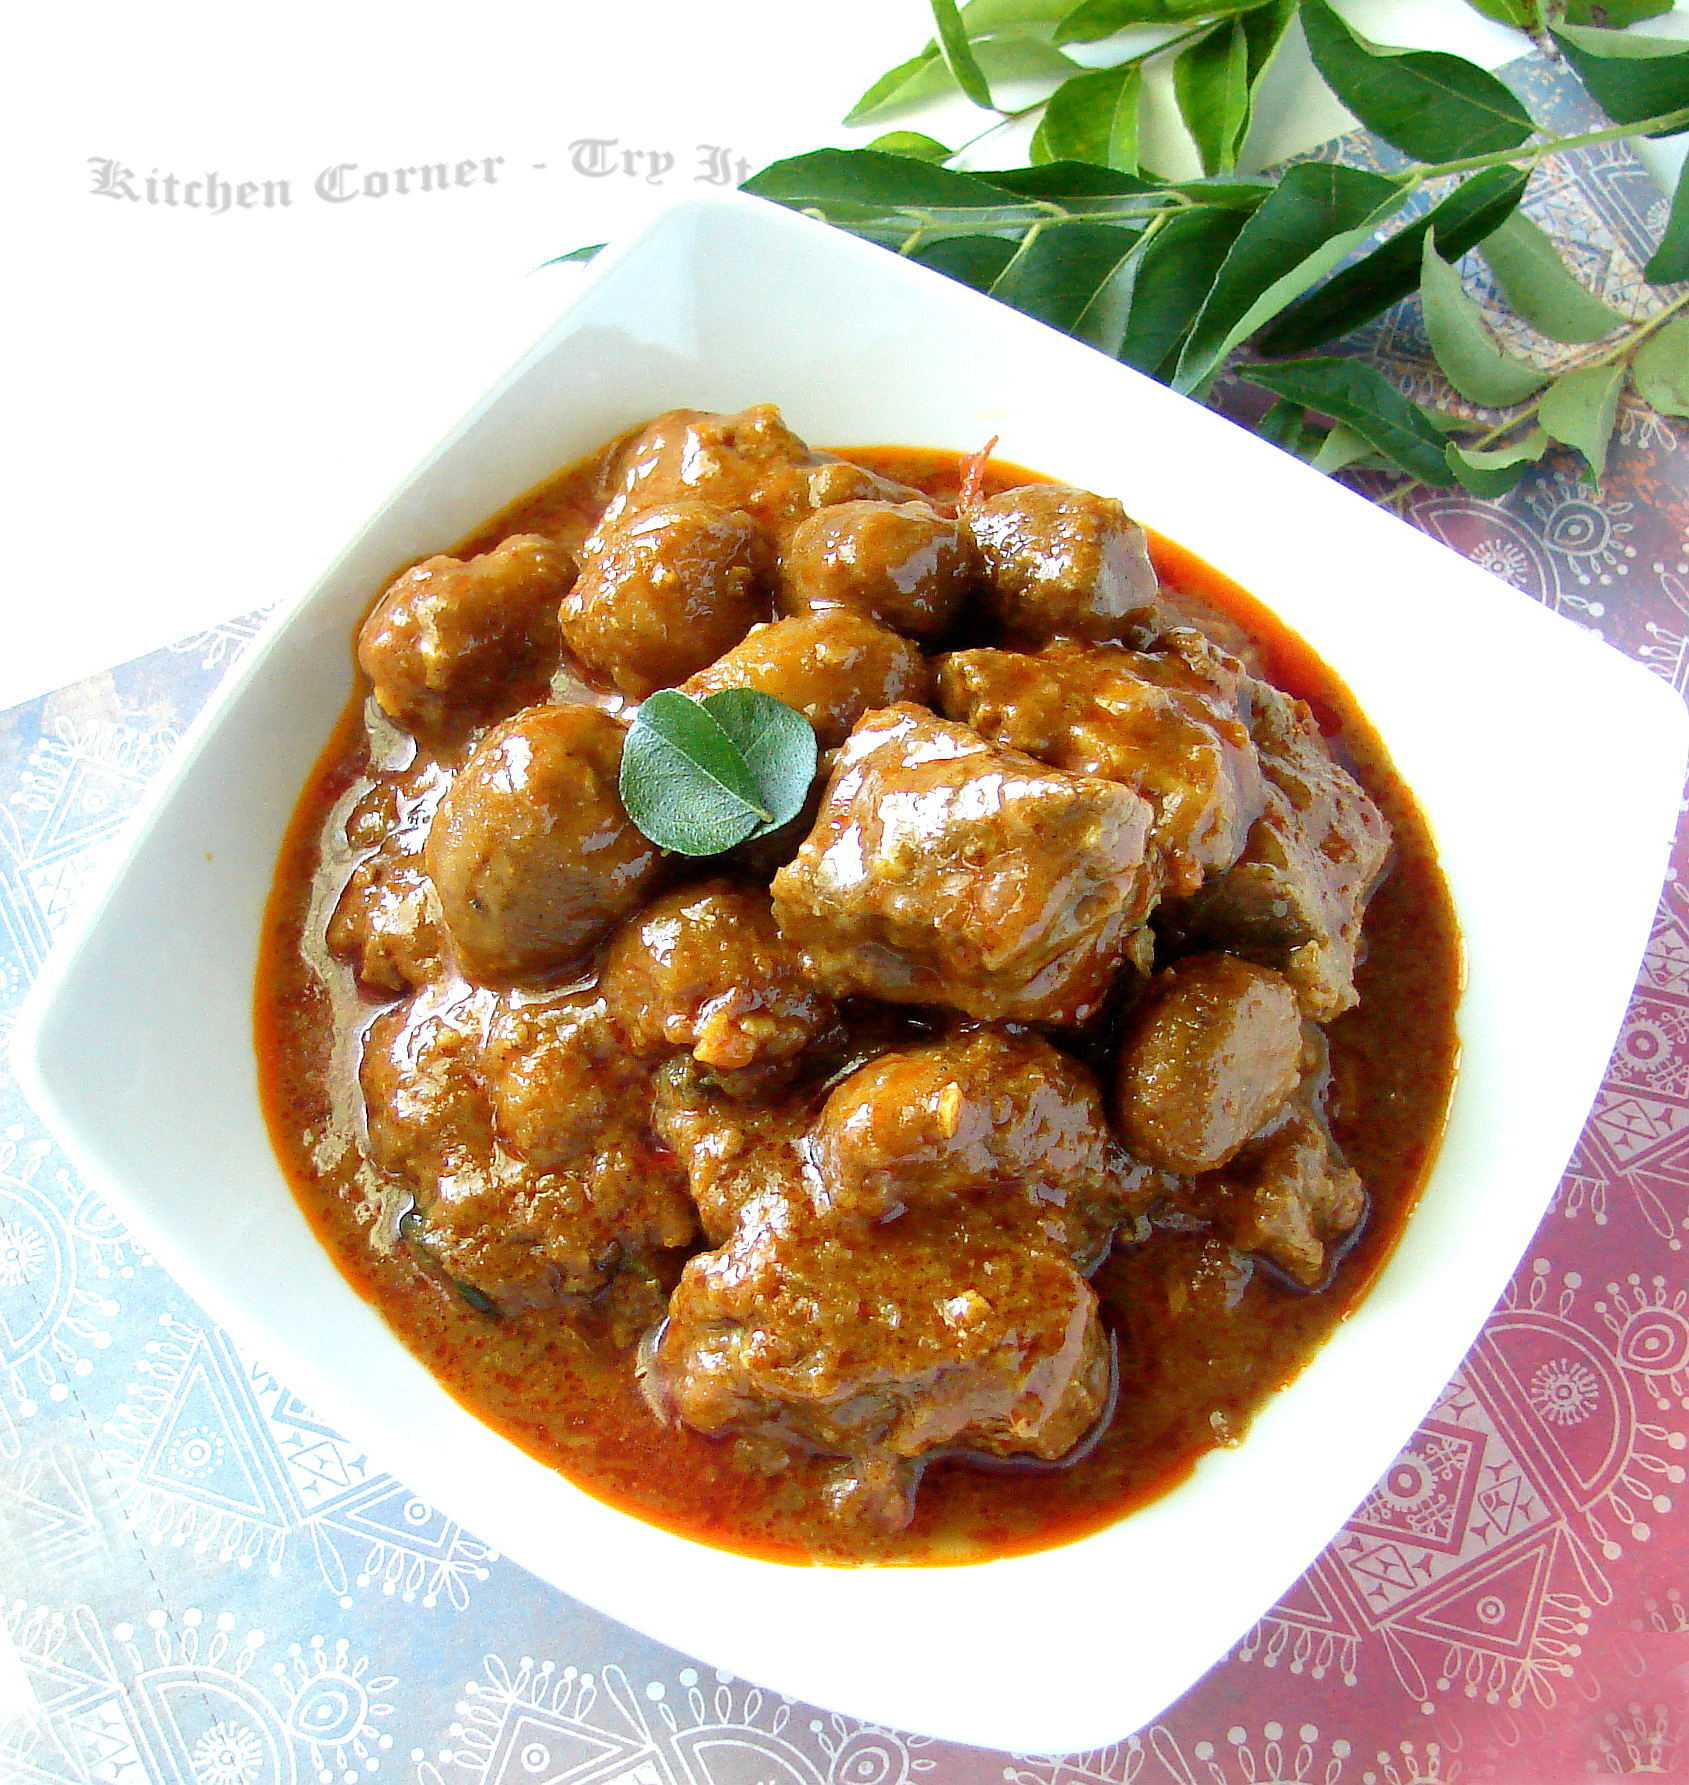 Koorka Irachi Curry/Chinese Potato and Beef Curry